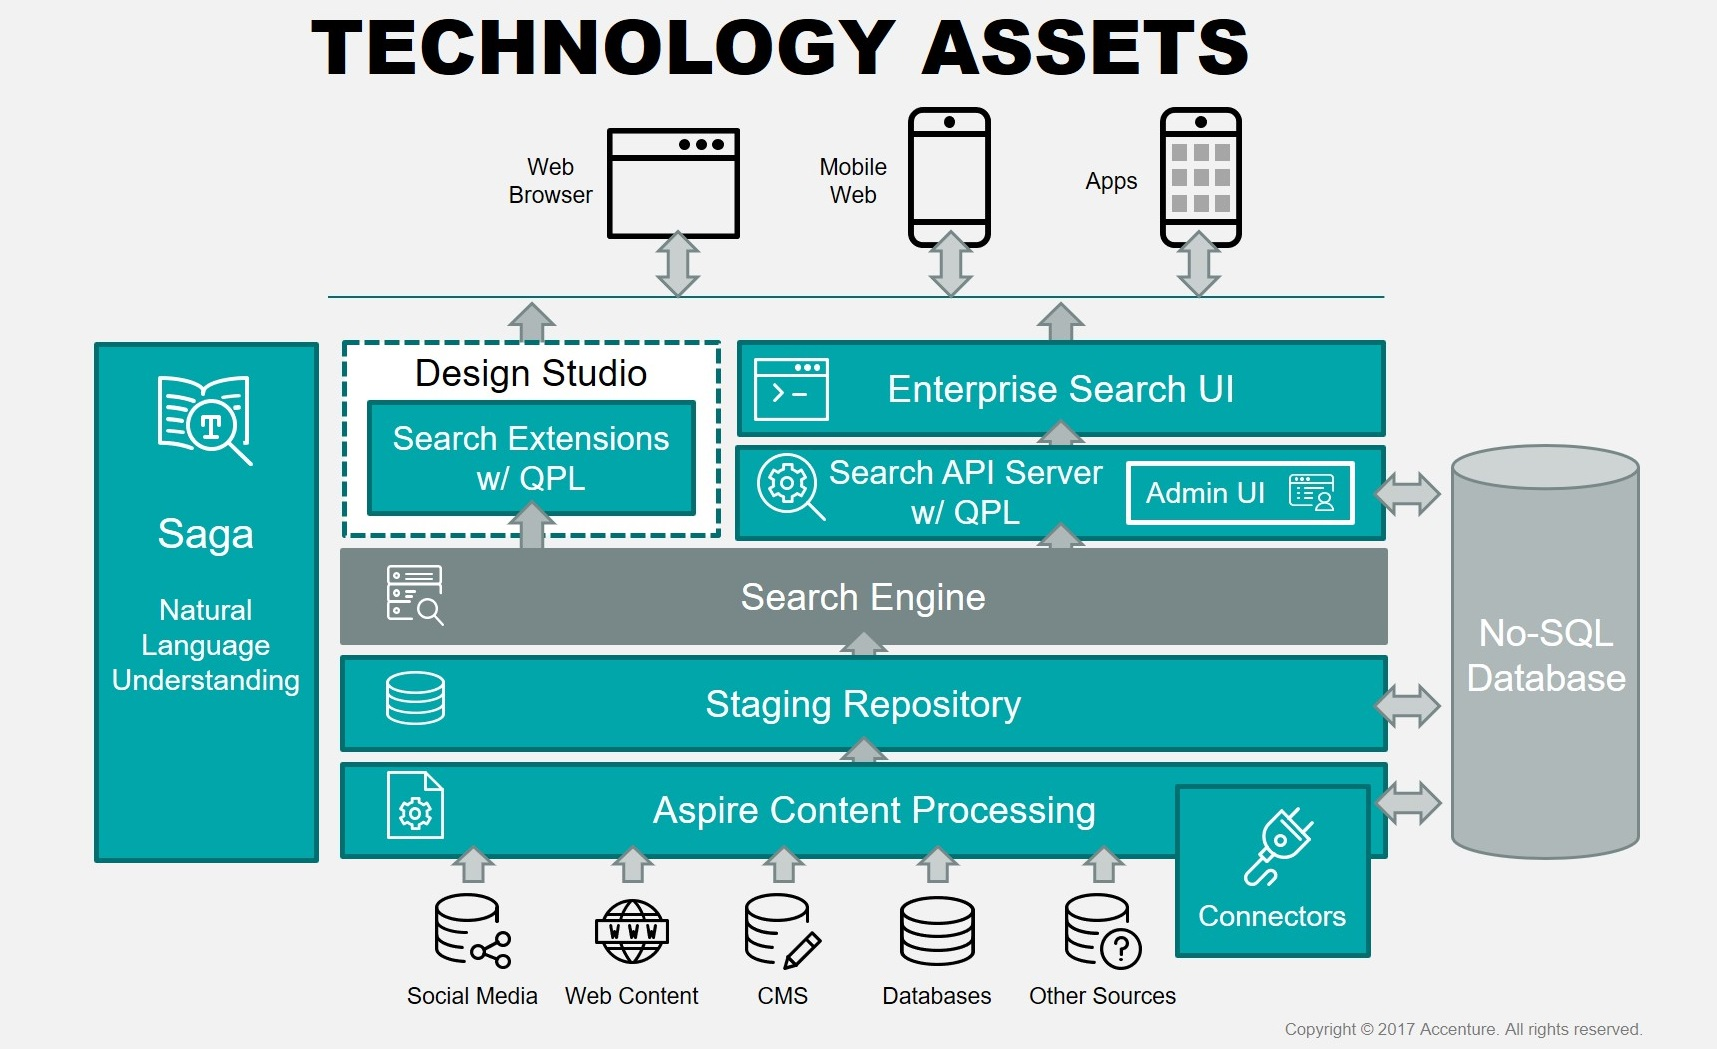 Technology Assets for Search and Analytics Projects | Accenture